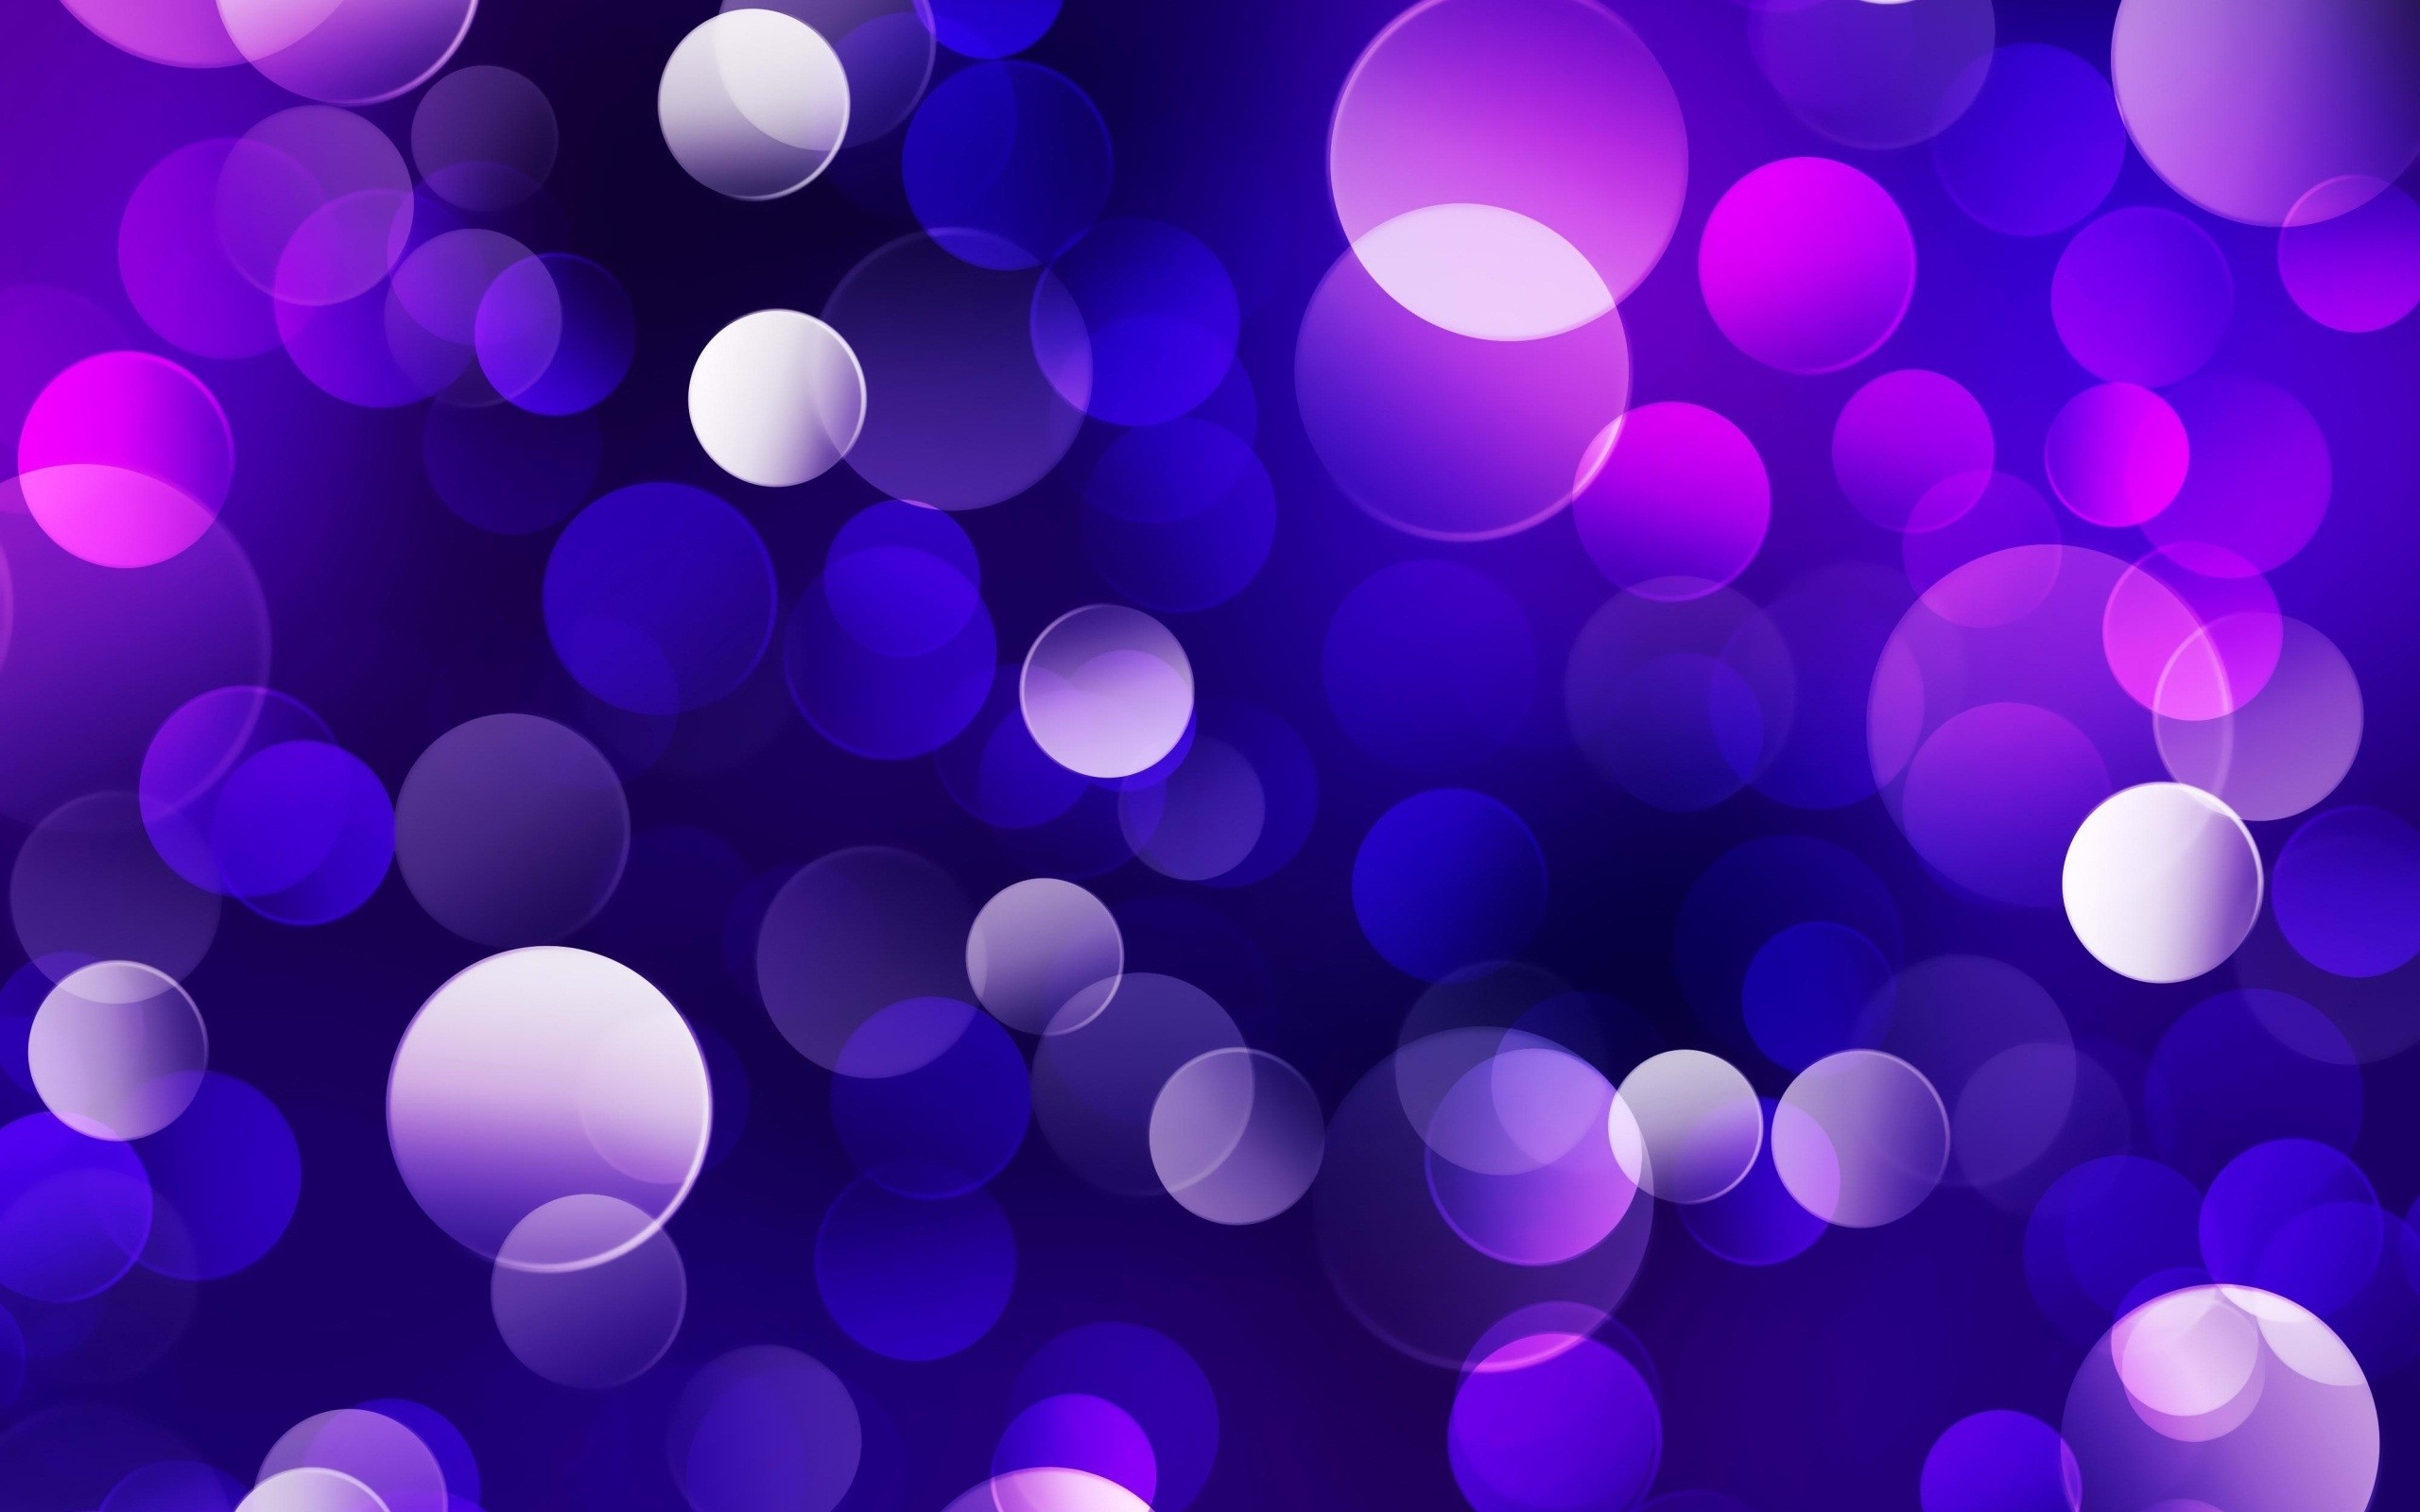 2560x1600 Purple abstract wallpaper widescreen desktop mobile iphone android hd  wallpaper and desktop.